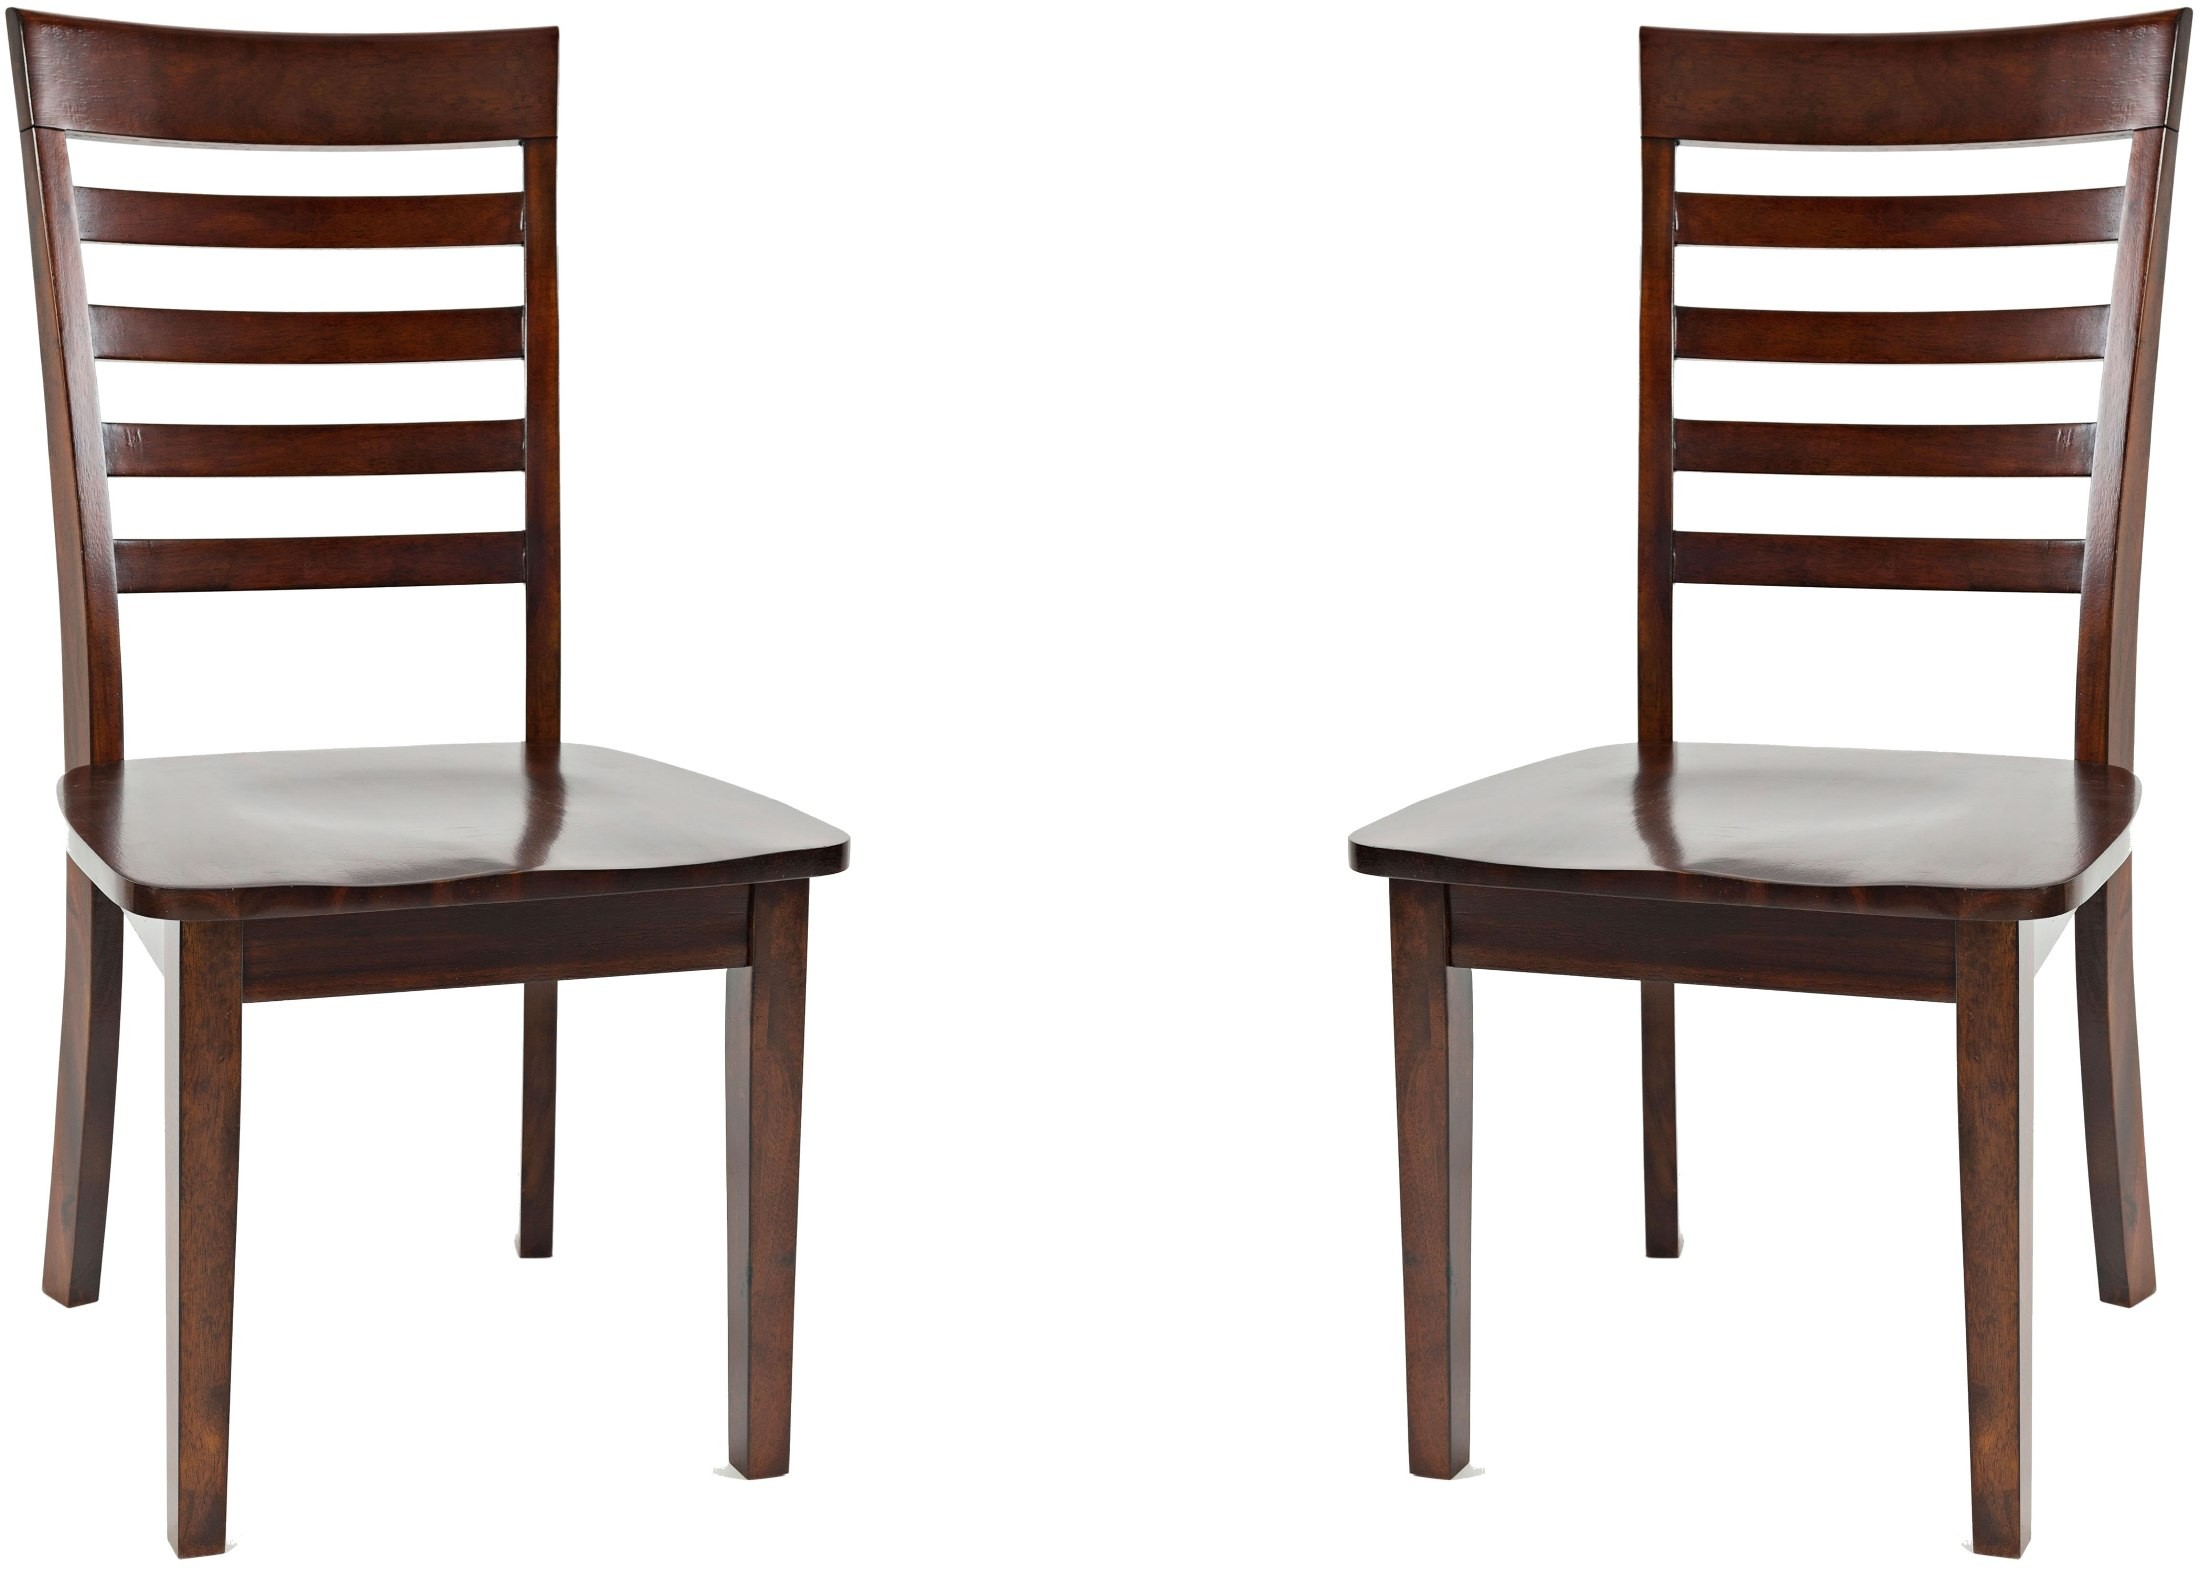 Everyday Classics Cherry Ladder Back Dining Chair Set Of 2. Faucet Finishes. Marble Of The World. Furniturecart Com. Ceaser Stone. Diamond Life. Comfortable Sectionals. Black Media Console. Sliding Top Coffee Table